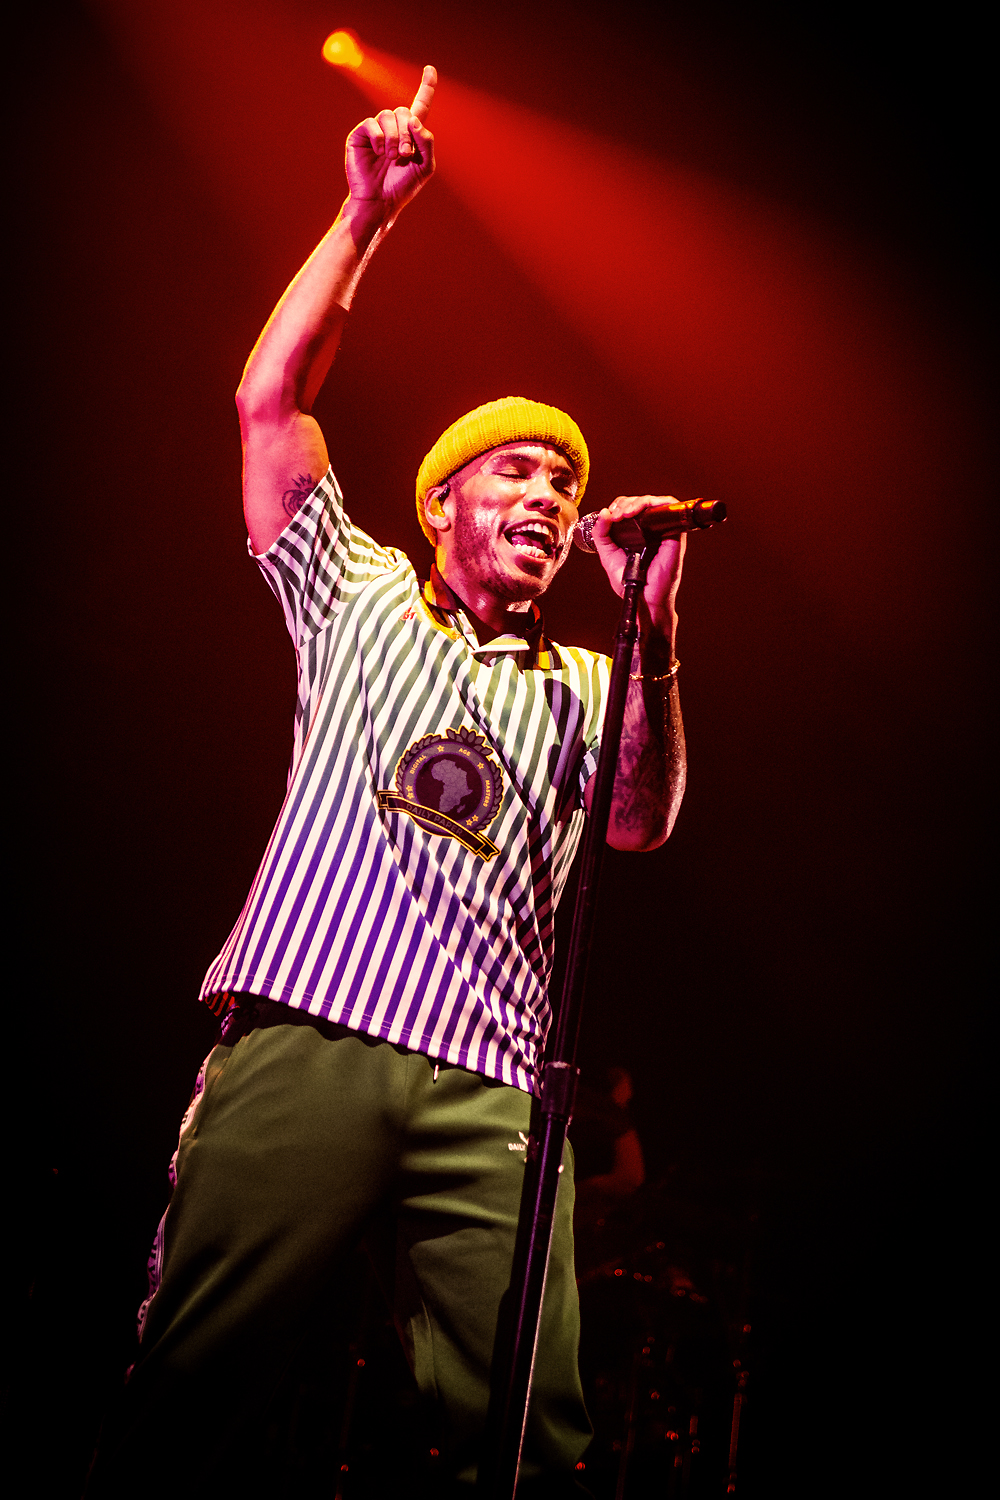 Anderson .Paak & The Free Nationals @ Lotto Arena Antwerpen 2019 (Jan Van den Bulck)